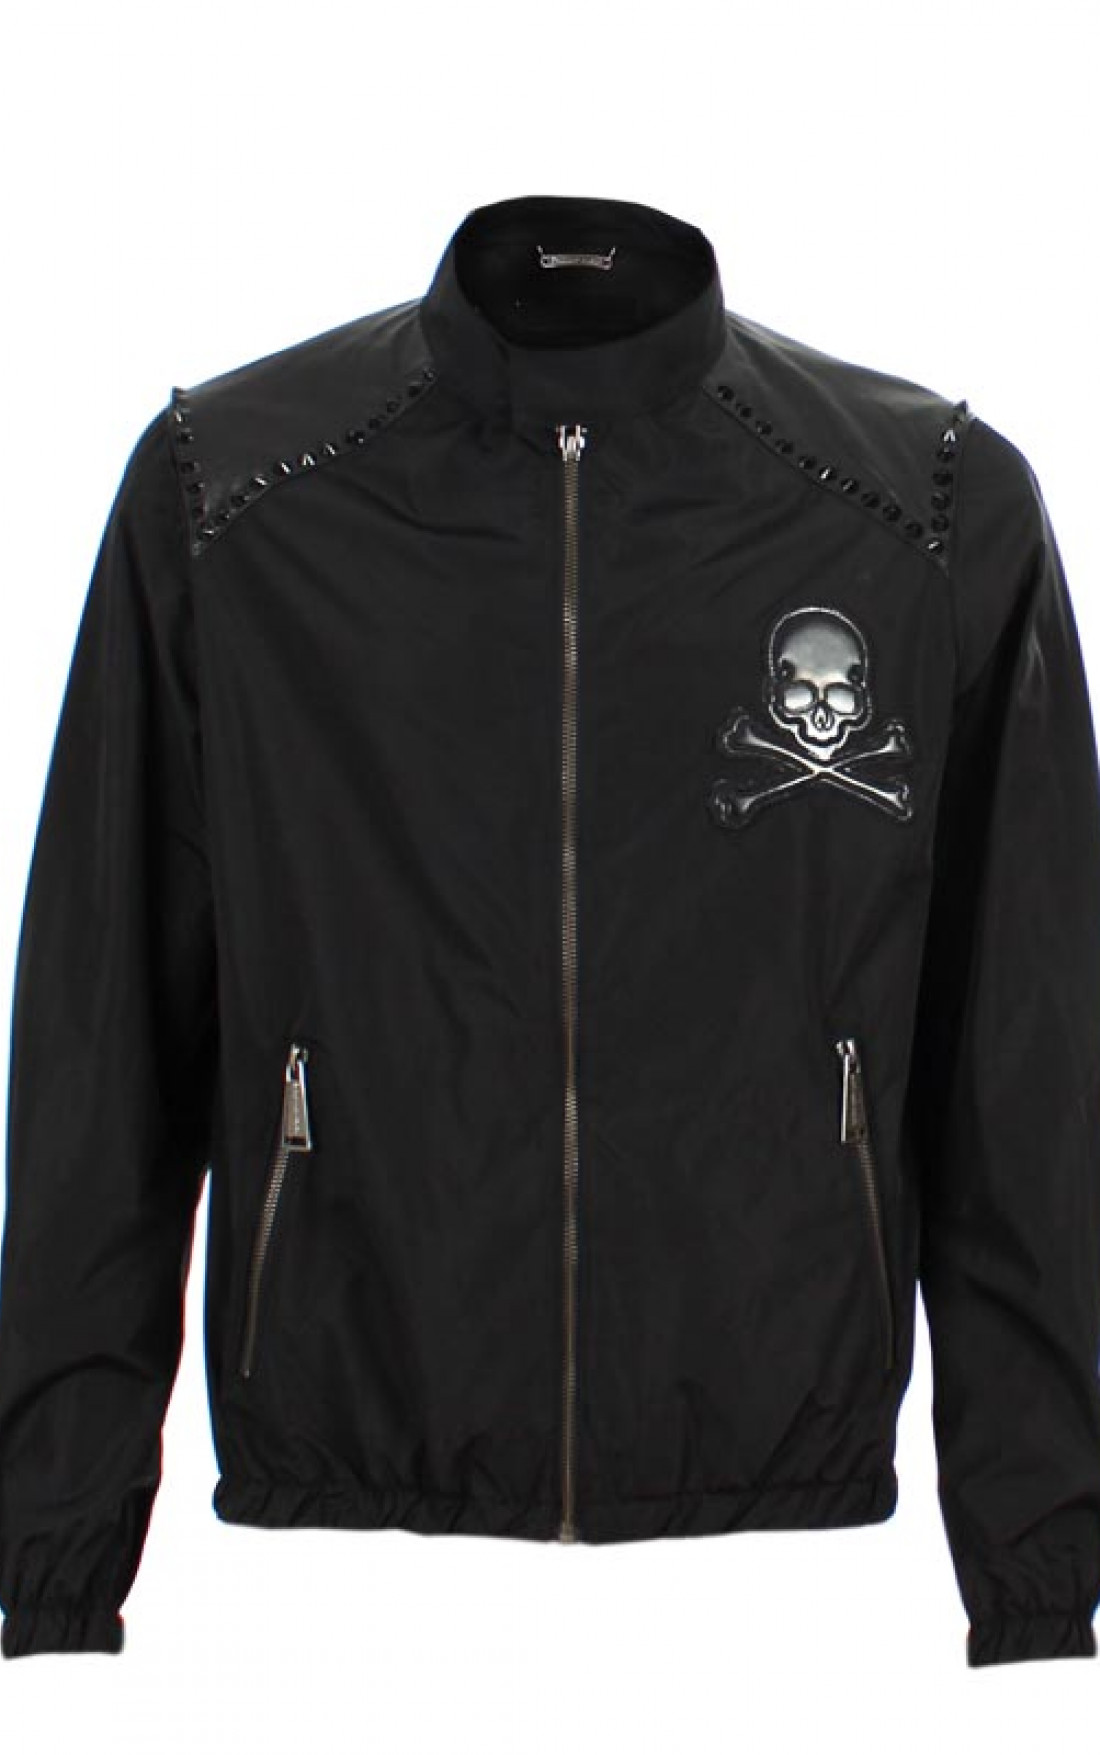 Philipp-Plein-Mens-Basic-Rider-Jacket-Navy-Black-Boudi-UK